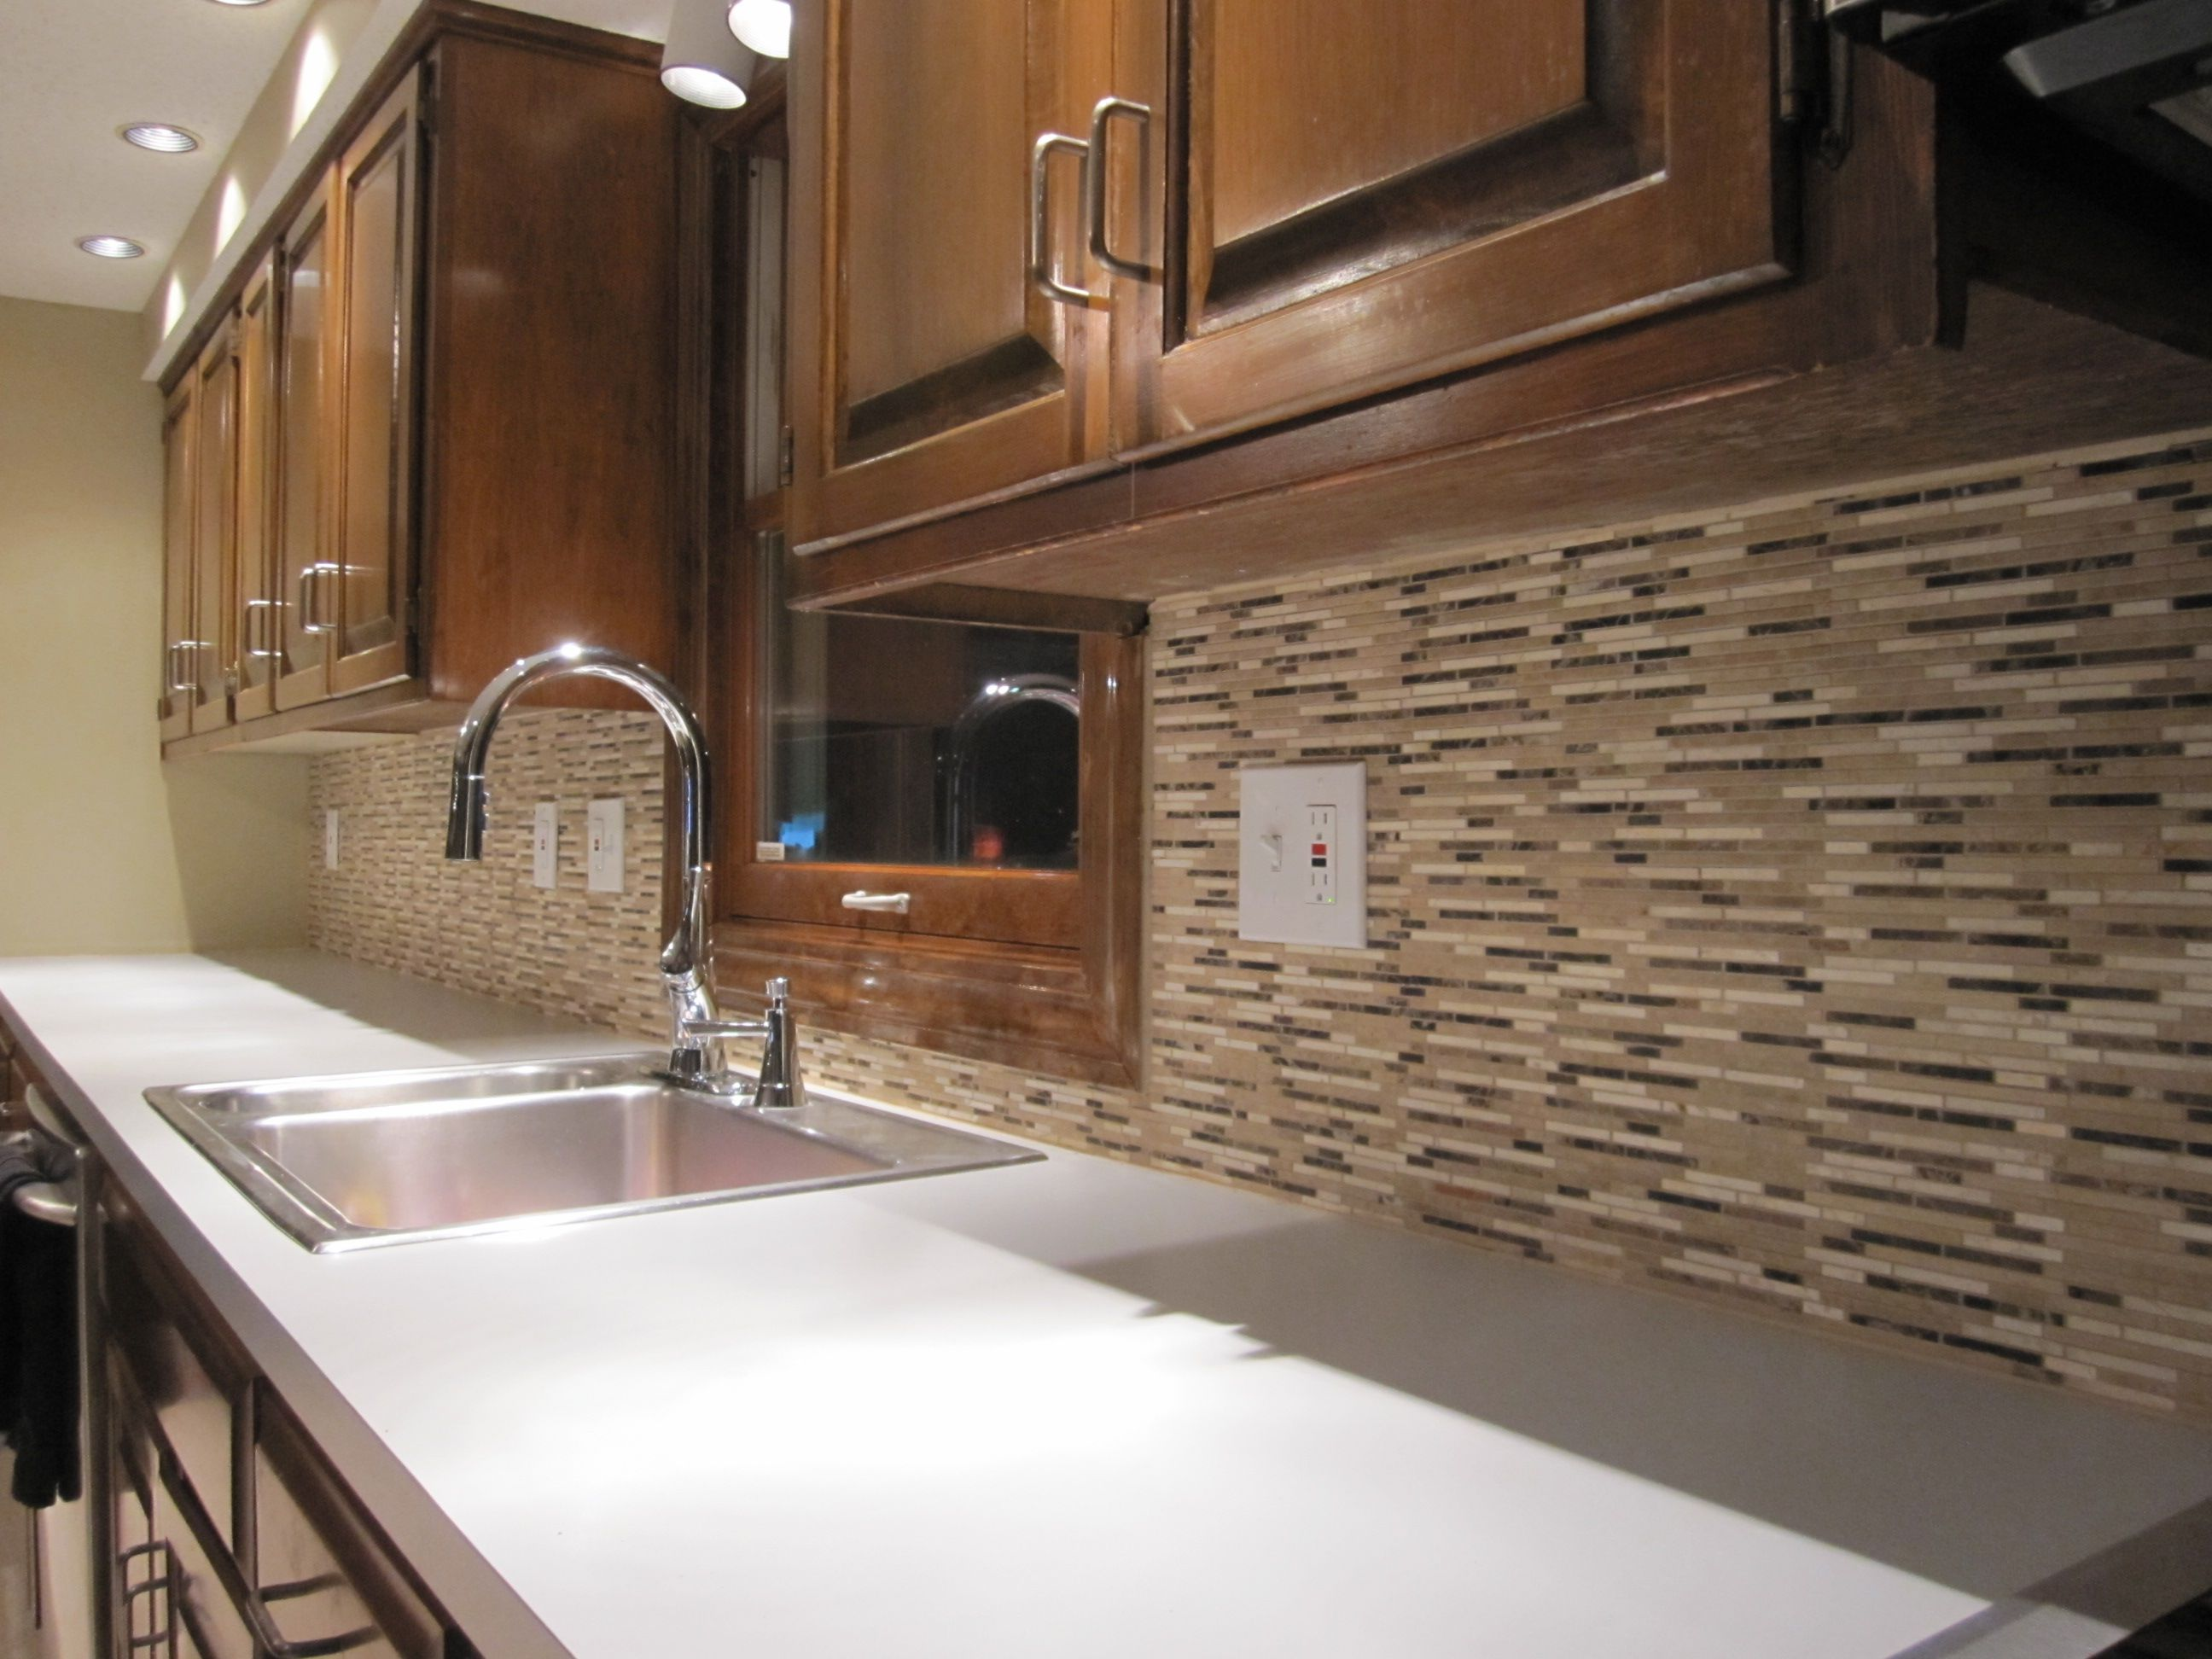 Choose Small Kitchen Tile Backsplash to Compelete Contemporary Kitchen with Oak Cabinets and White Countertop